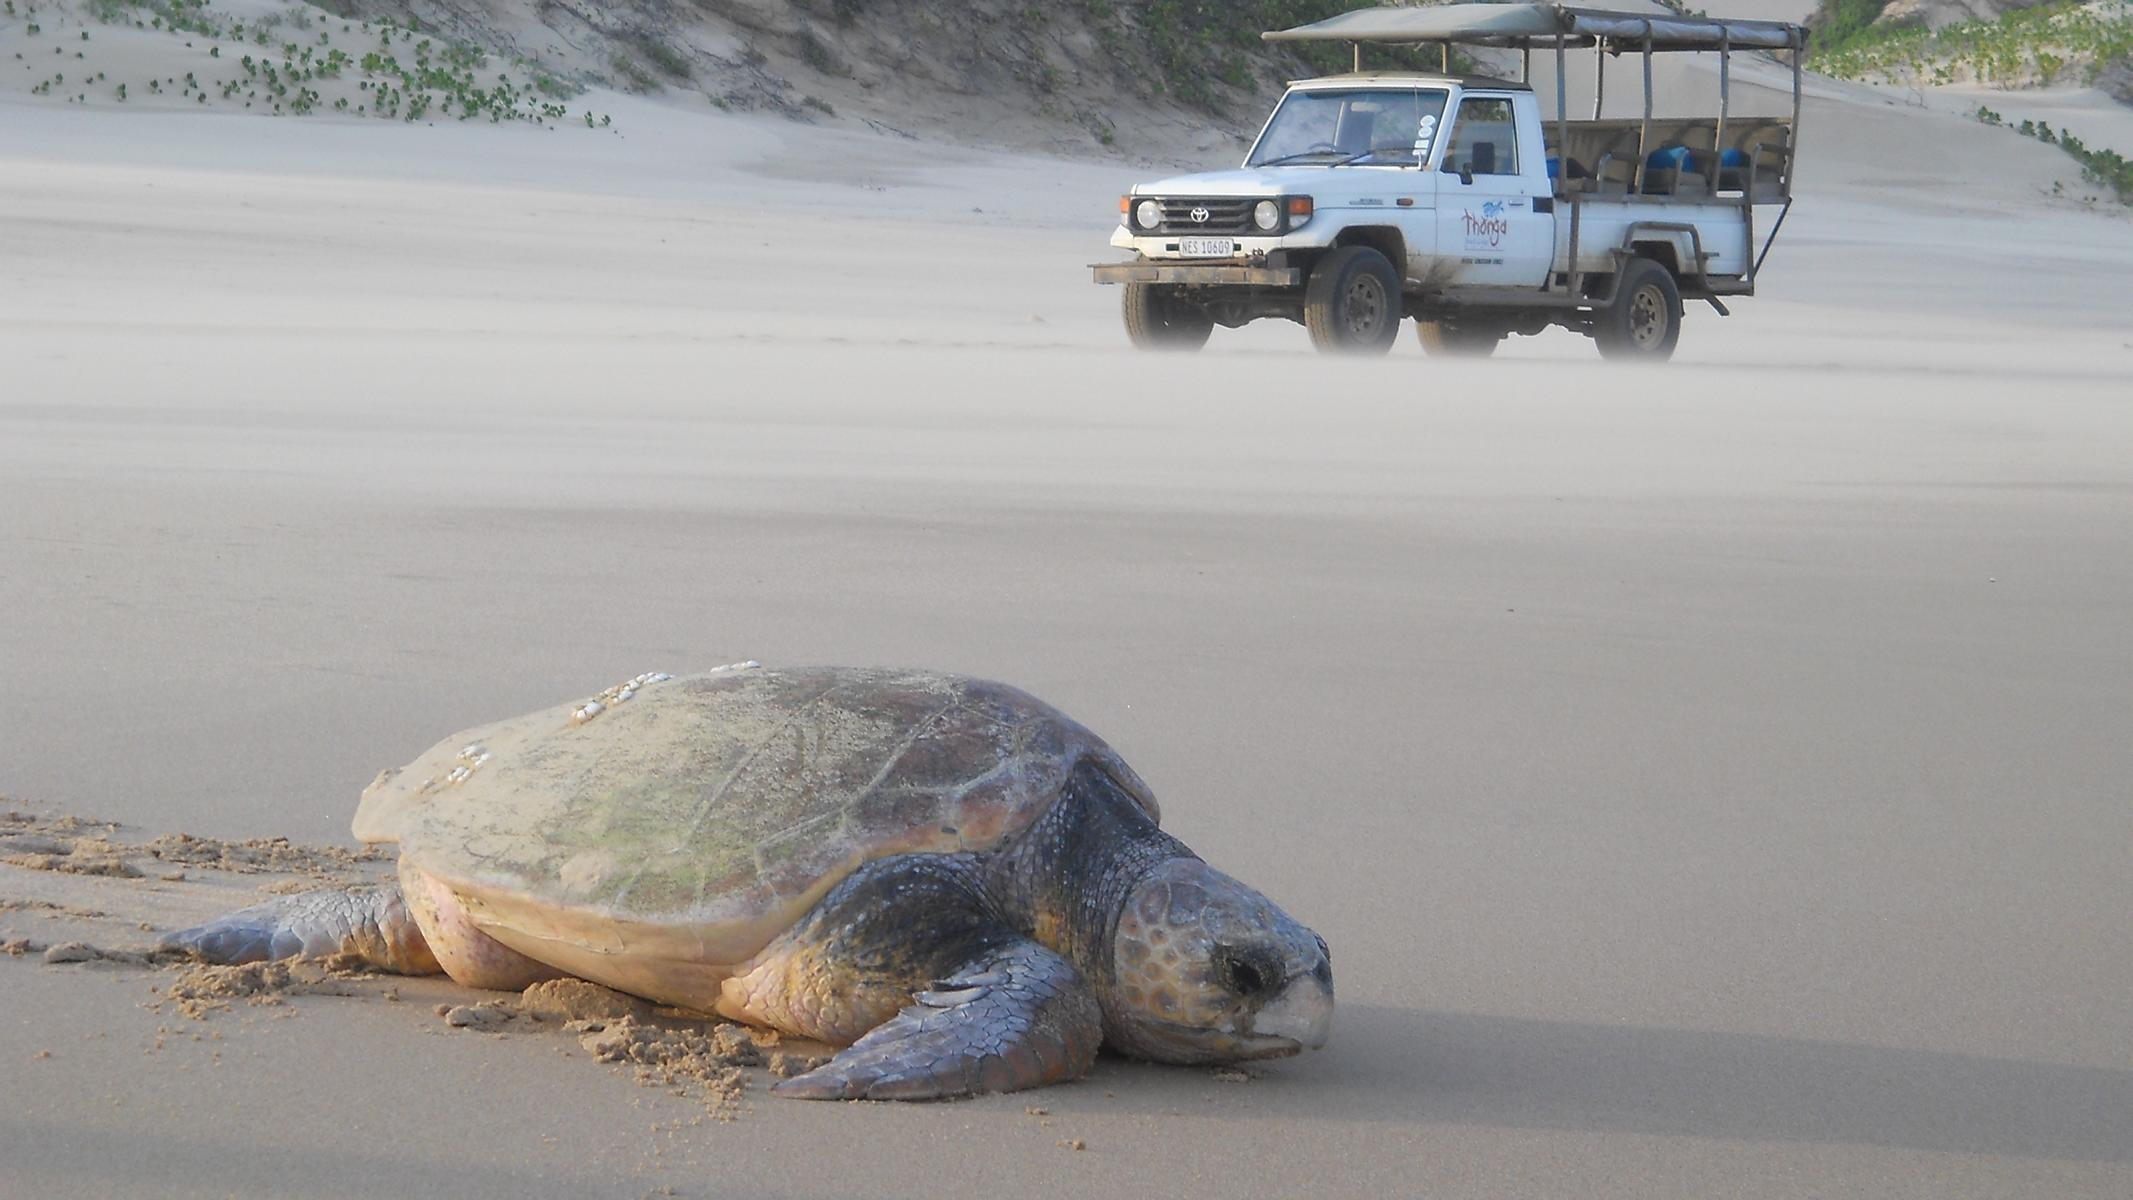 ThongaBeachLodge - K1600_turtle_on_beach_-_ashleigh.jpg